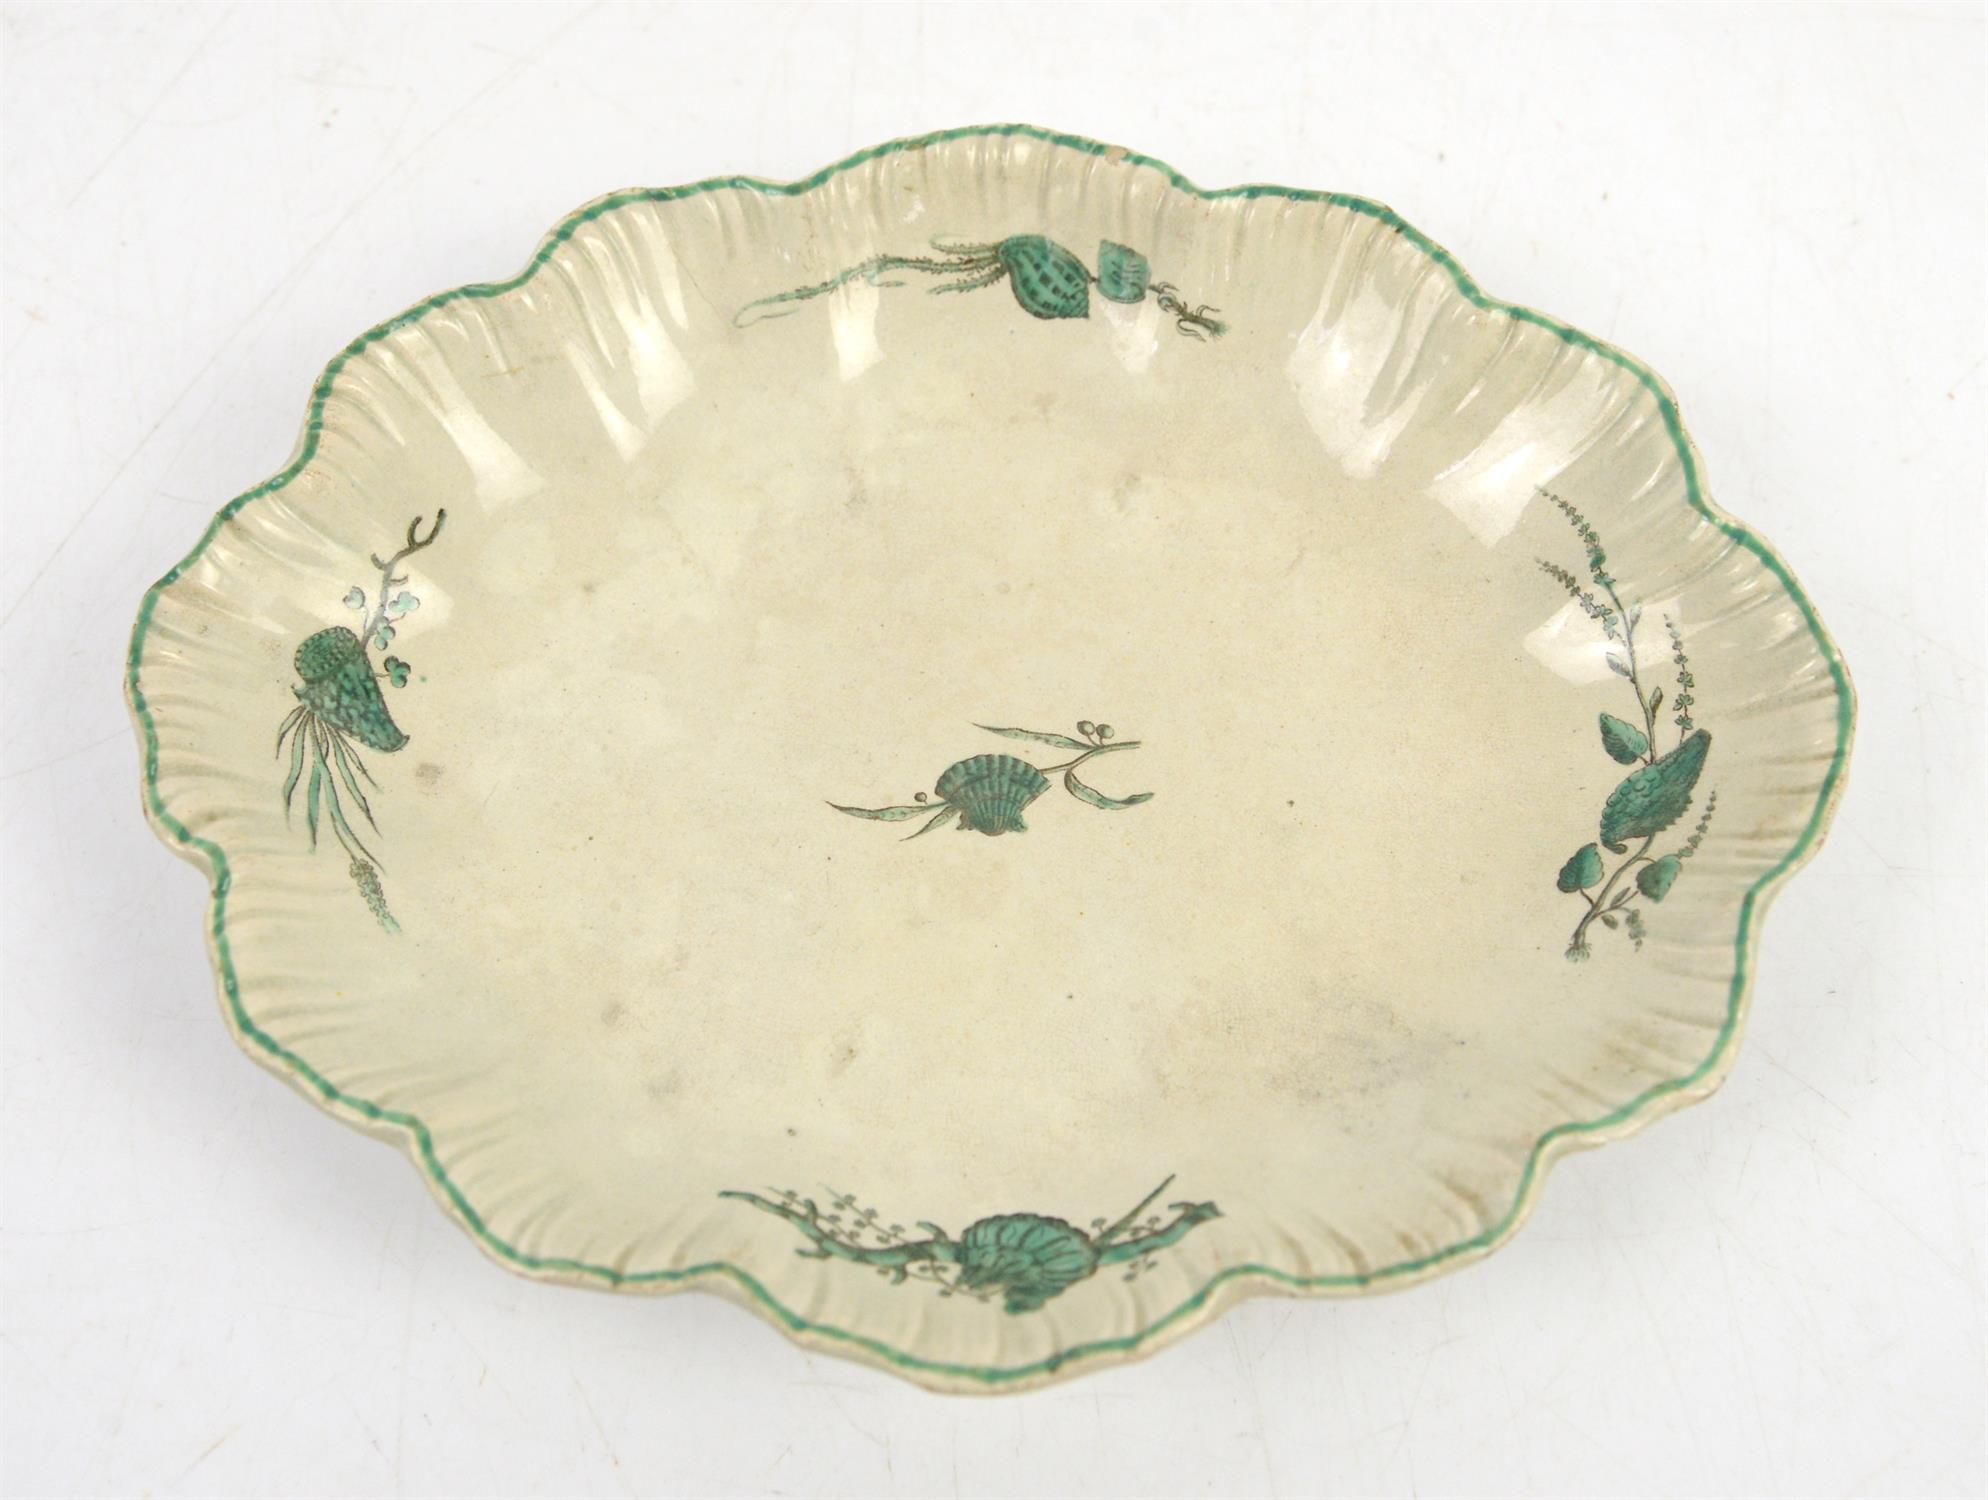 Wedgwood Creamware green feather edge dish decorated with shells and seaweed, circa 1780, 22 x 28cm